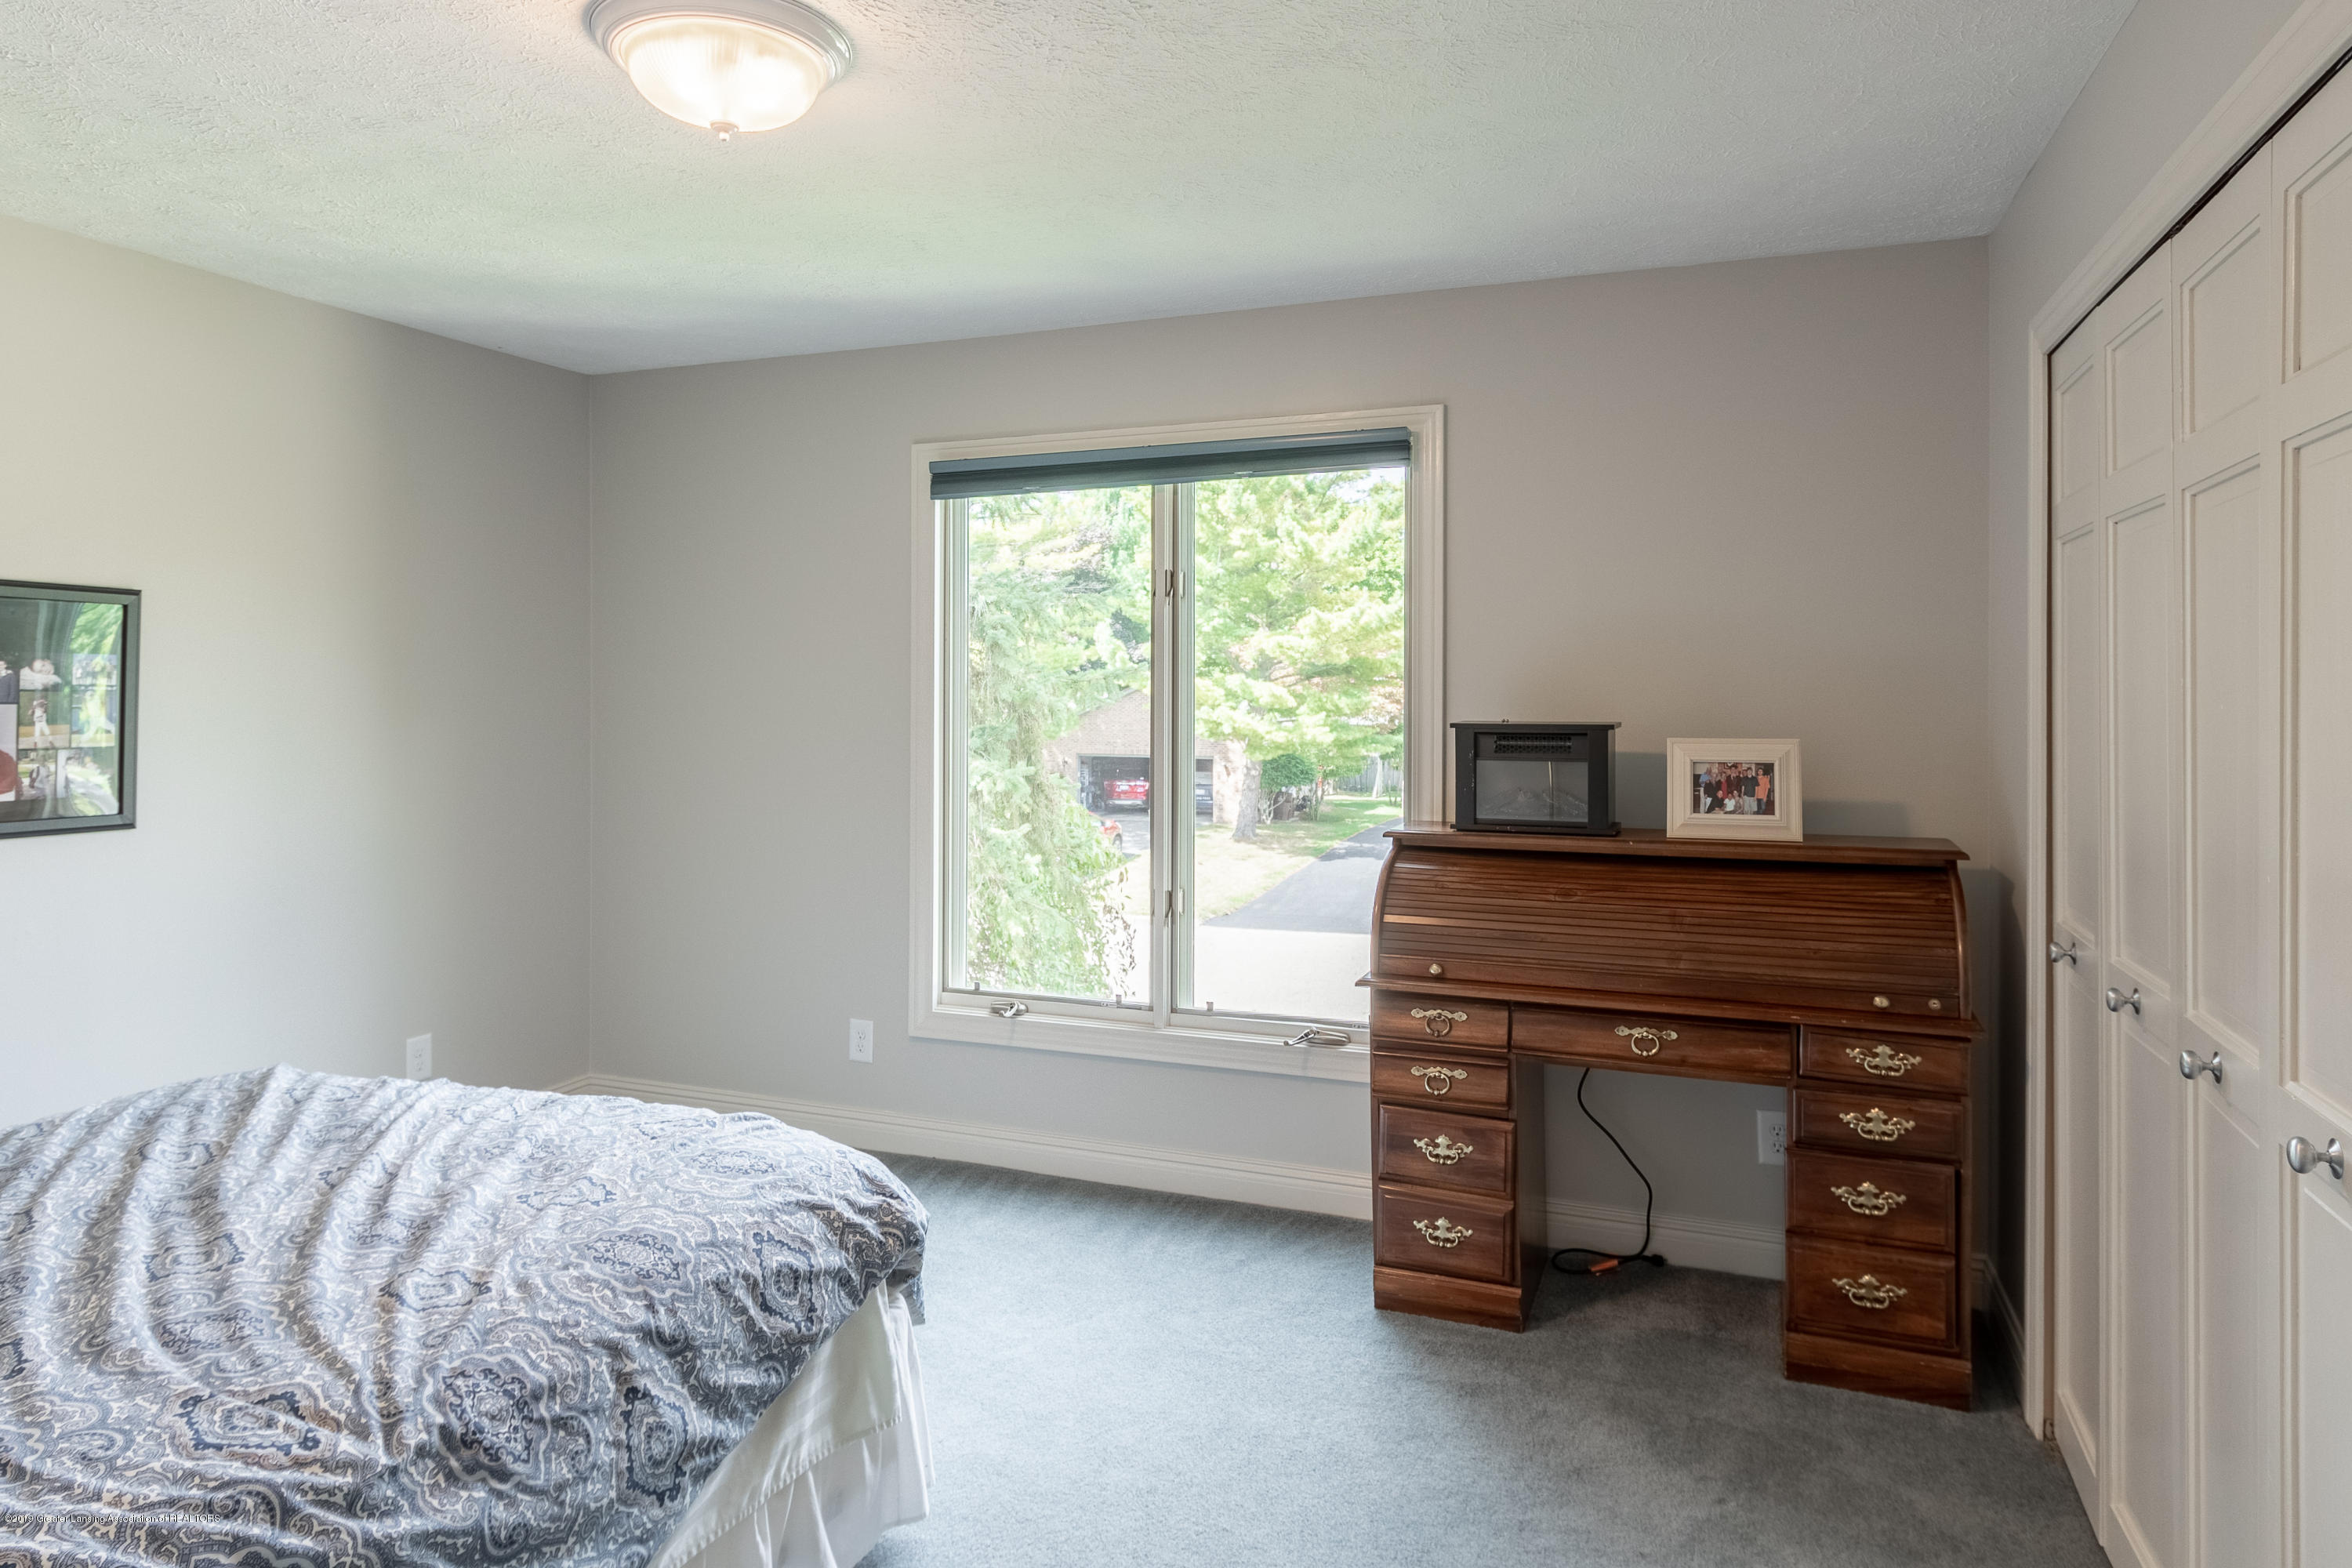 2133 Woodfield Rd - Bedroom - 42